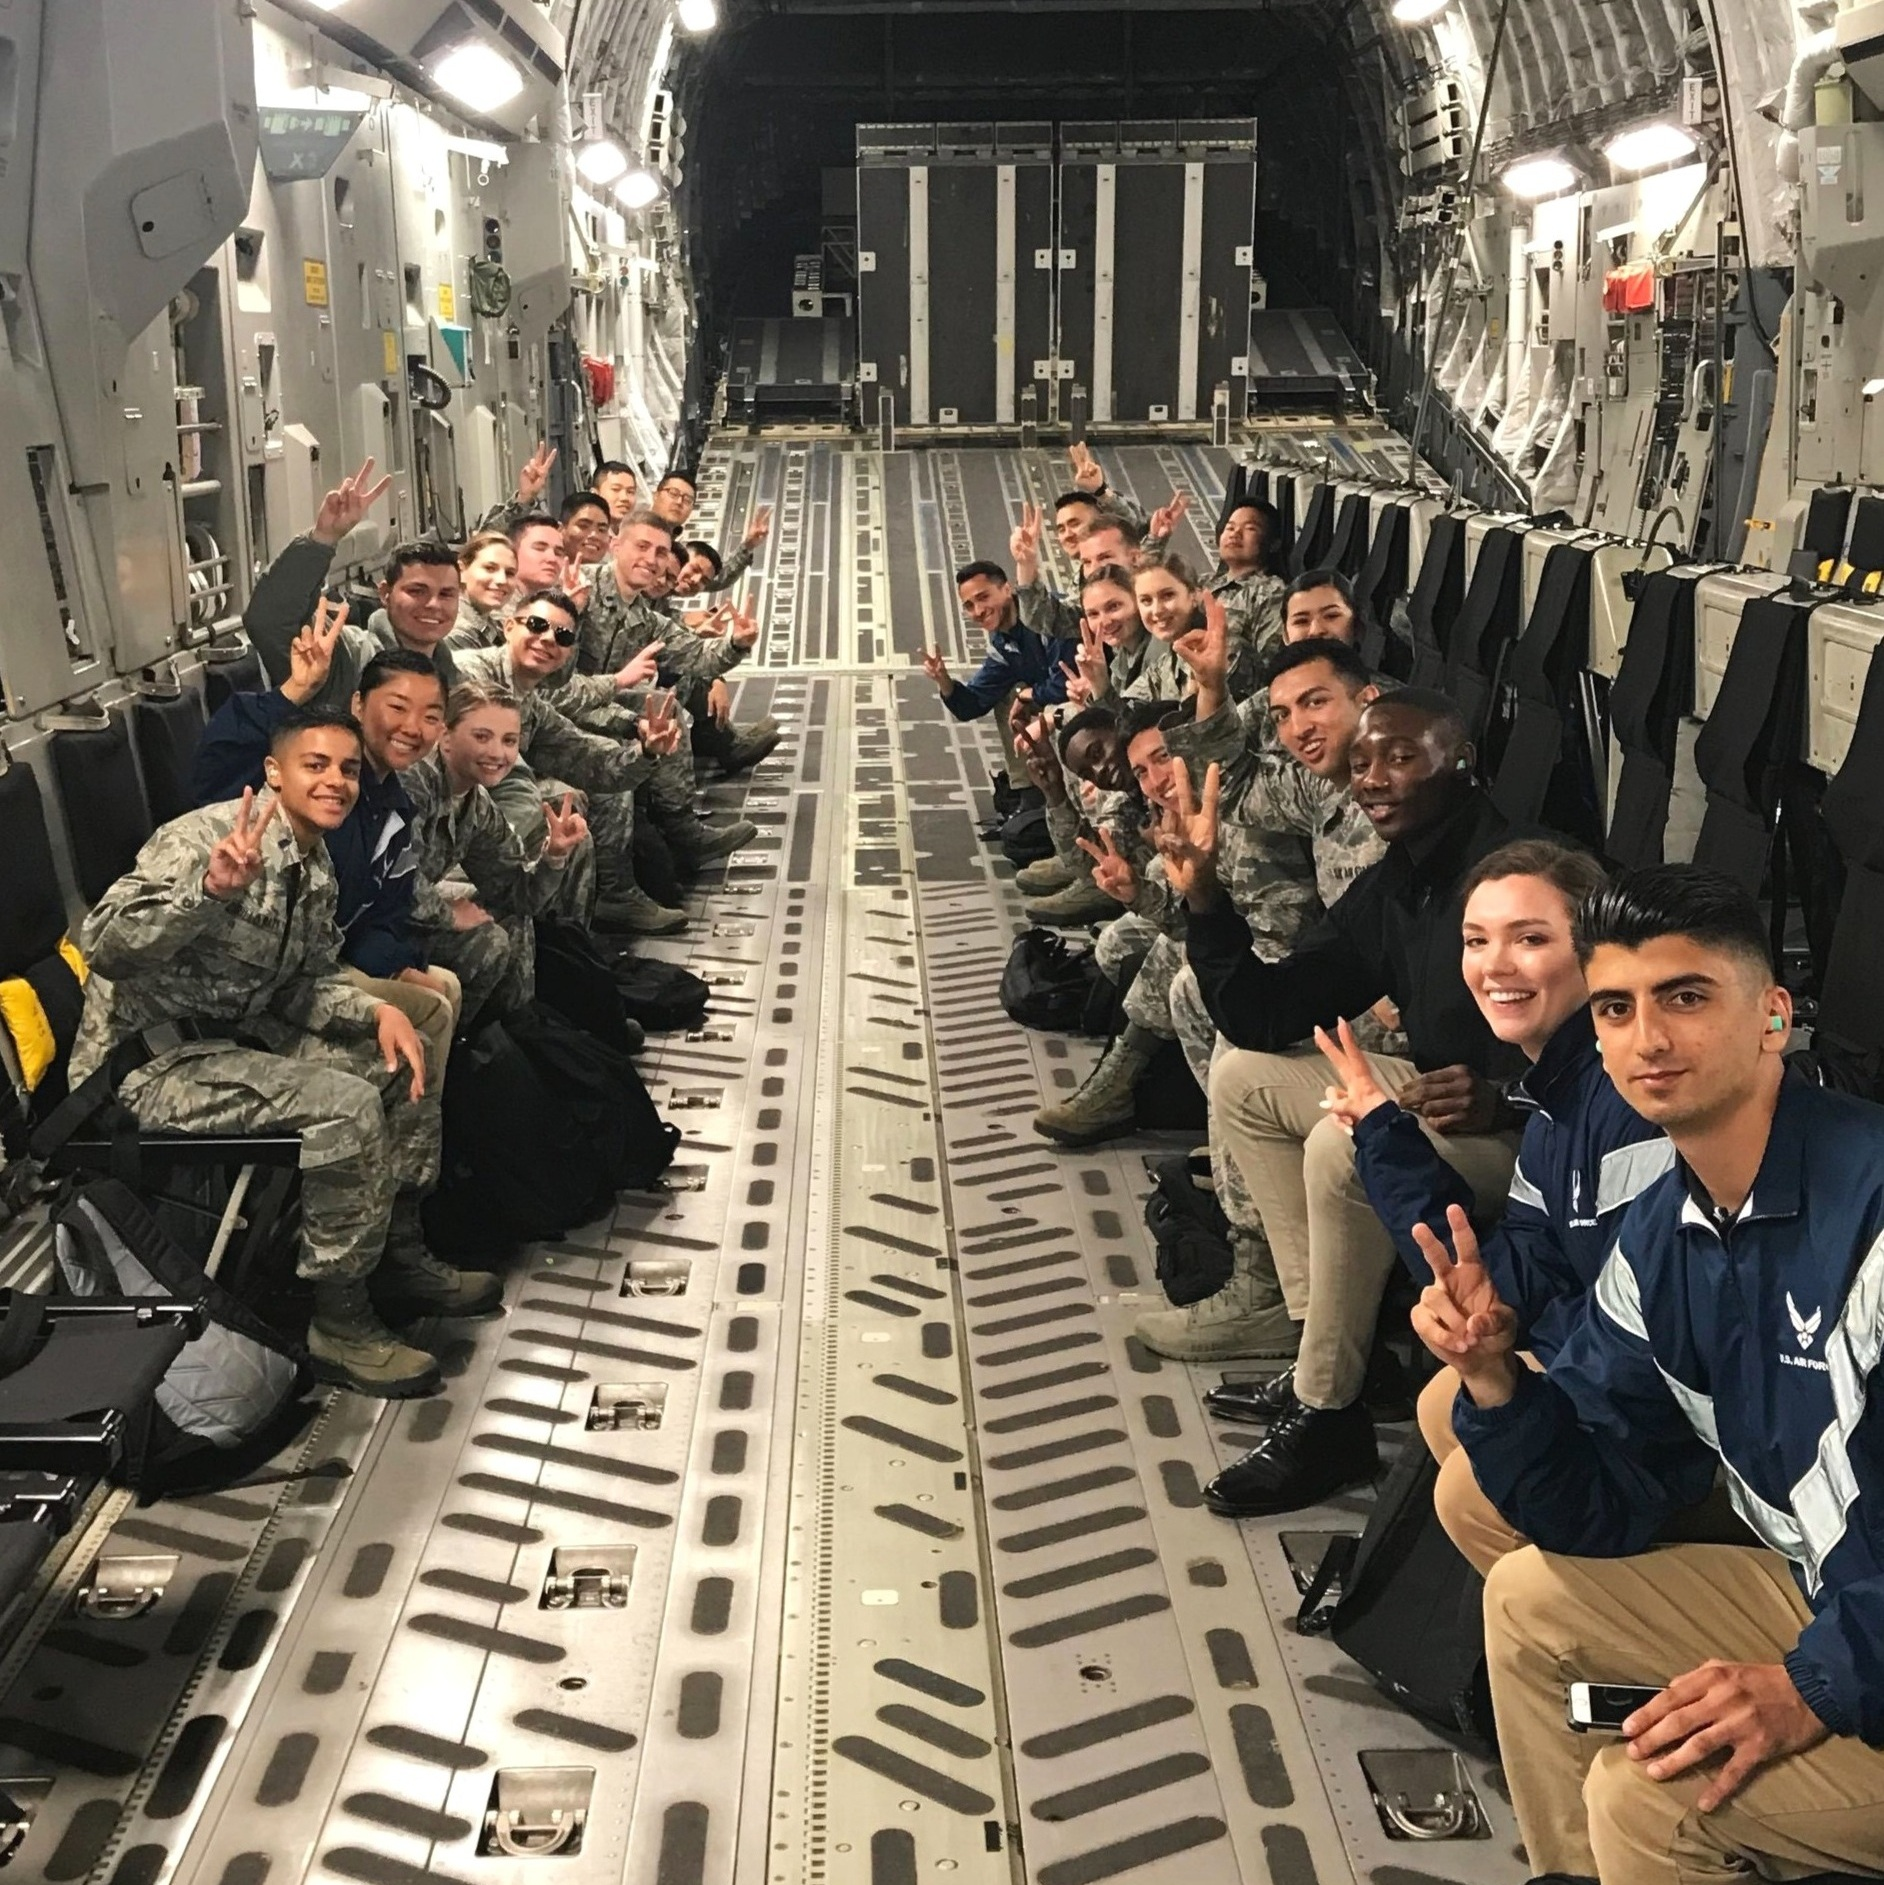 incentive flights - Throughout the year, cadets have the opportunity to fly in a variety of aircraft, from small two-seat aircraft such as the T-34 to heavy aircraft such as the C-17. Most flights are orchestrated via March ARB and are a fantastic introduction to flying in military aircraft, no experience necessary!